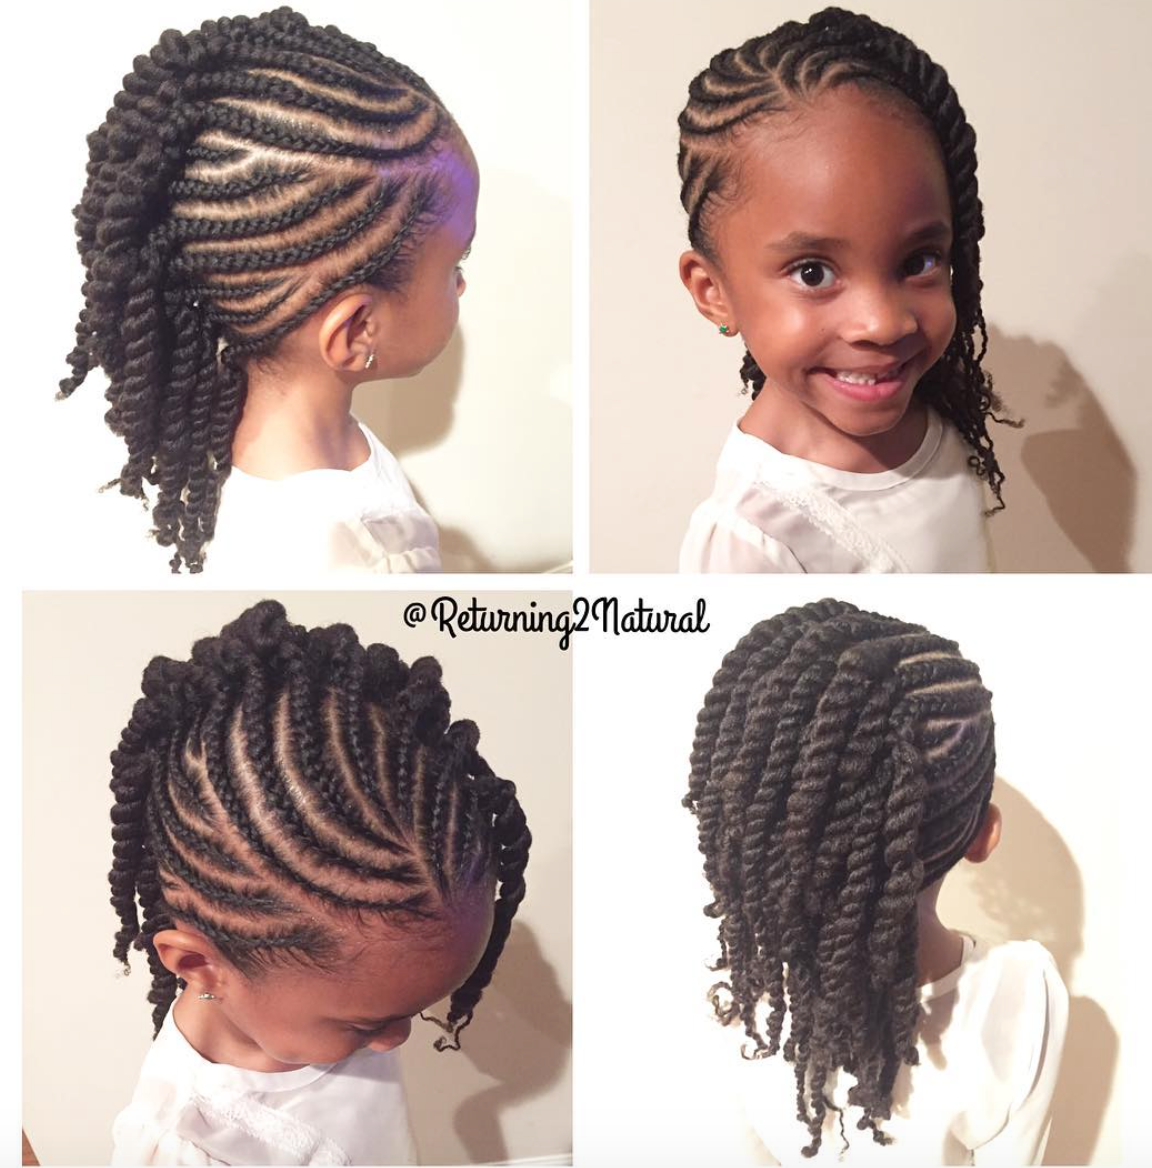 You Will Want to Try These 300+ Fun Braids With Your Girl